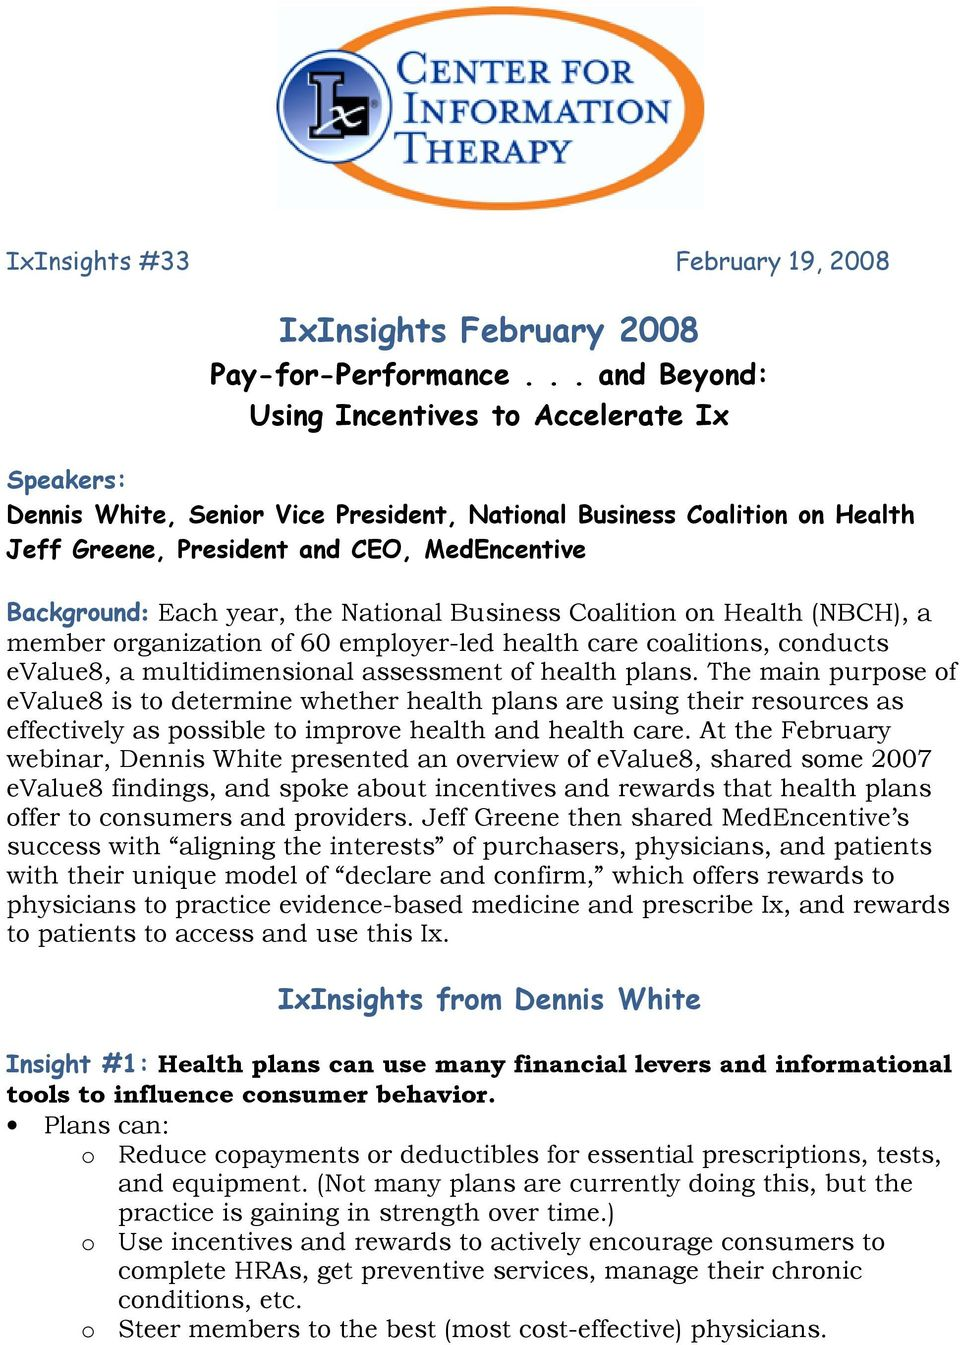 year, the National Business Coalition on Health (NBCH), a member organization of 60 employer-led health care coalitions, conducts evalue8, a multidimensional assessment of health plans.